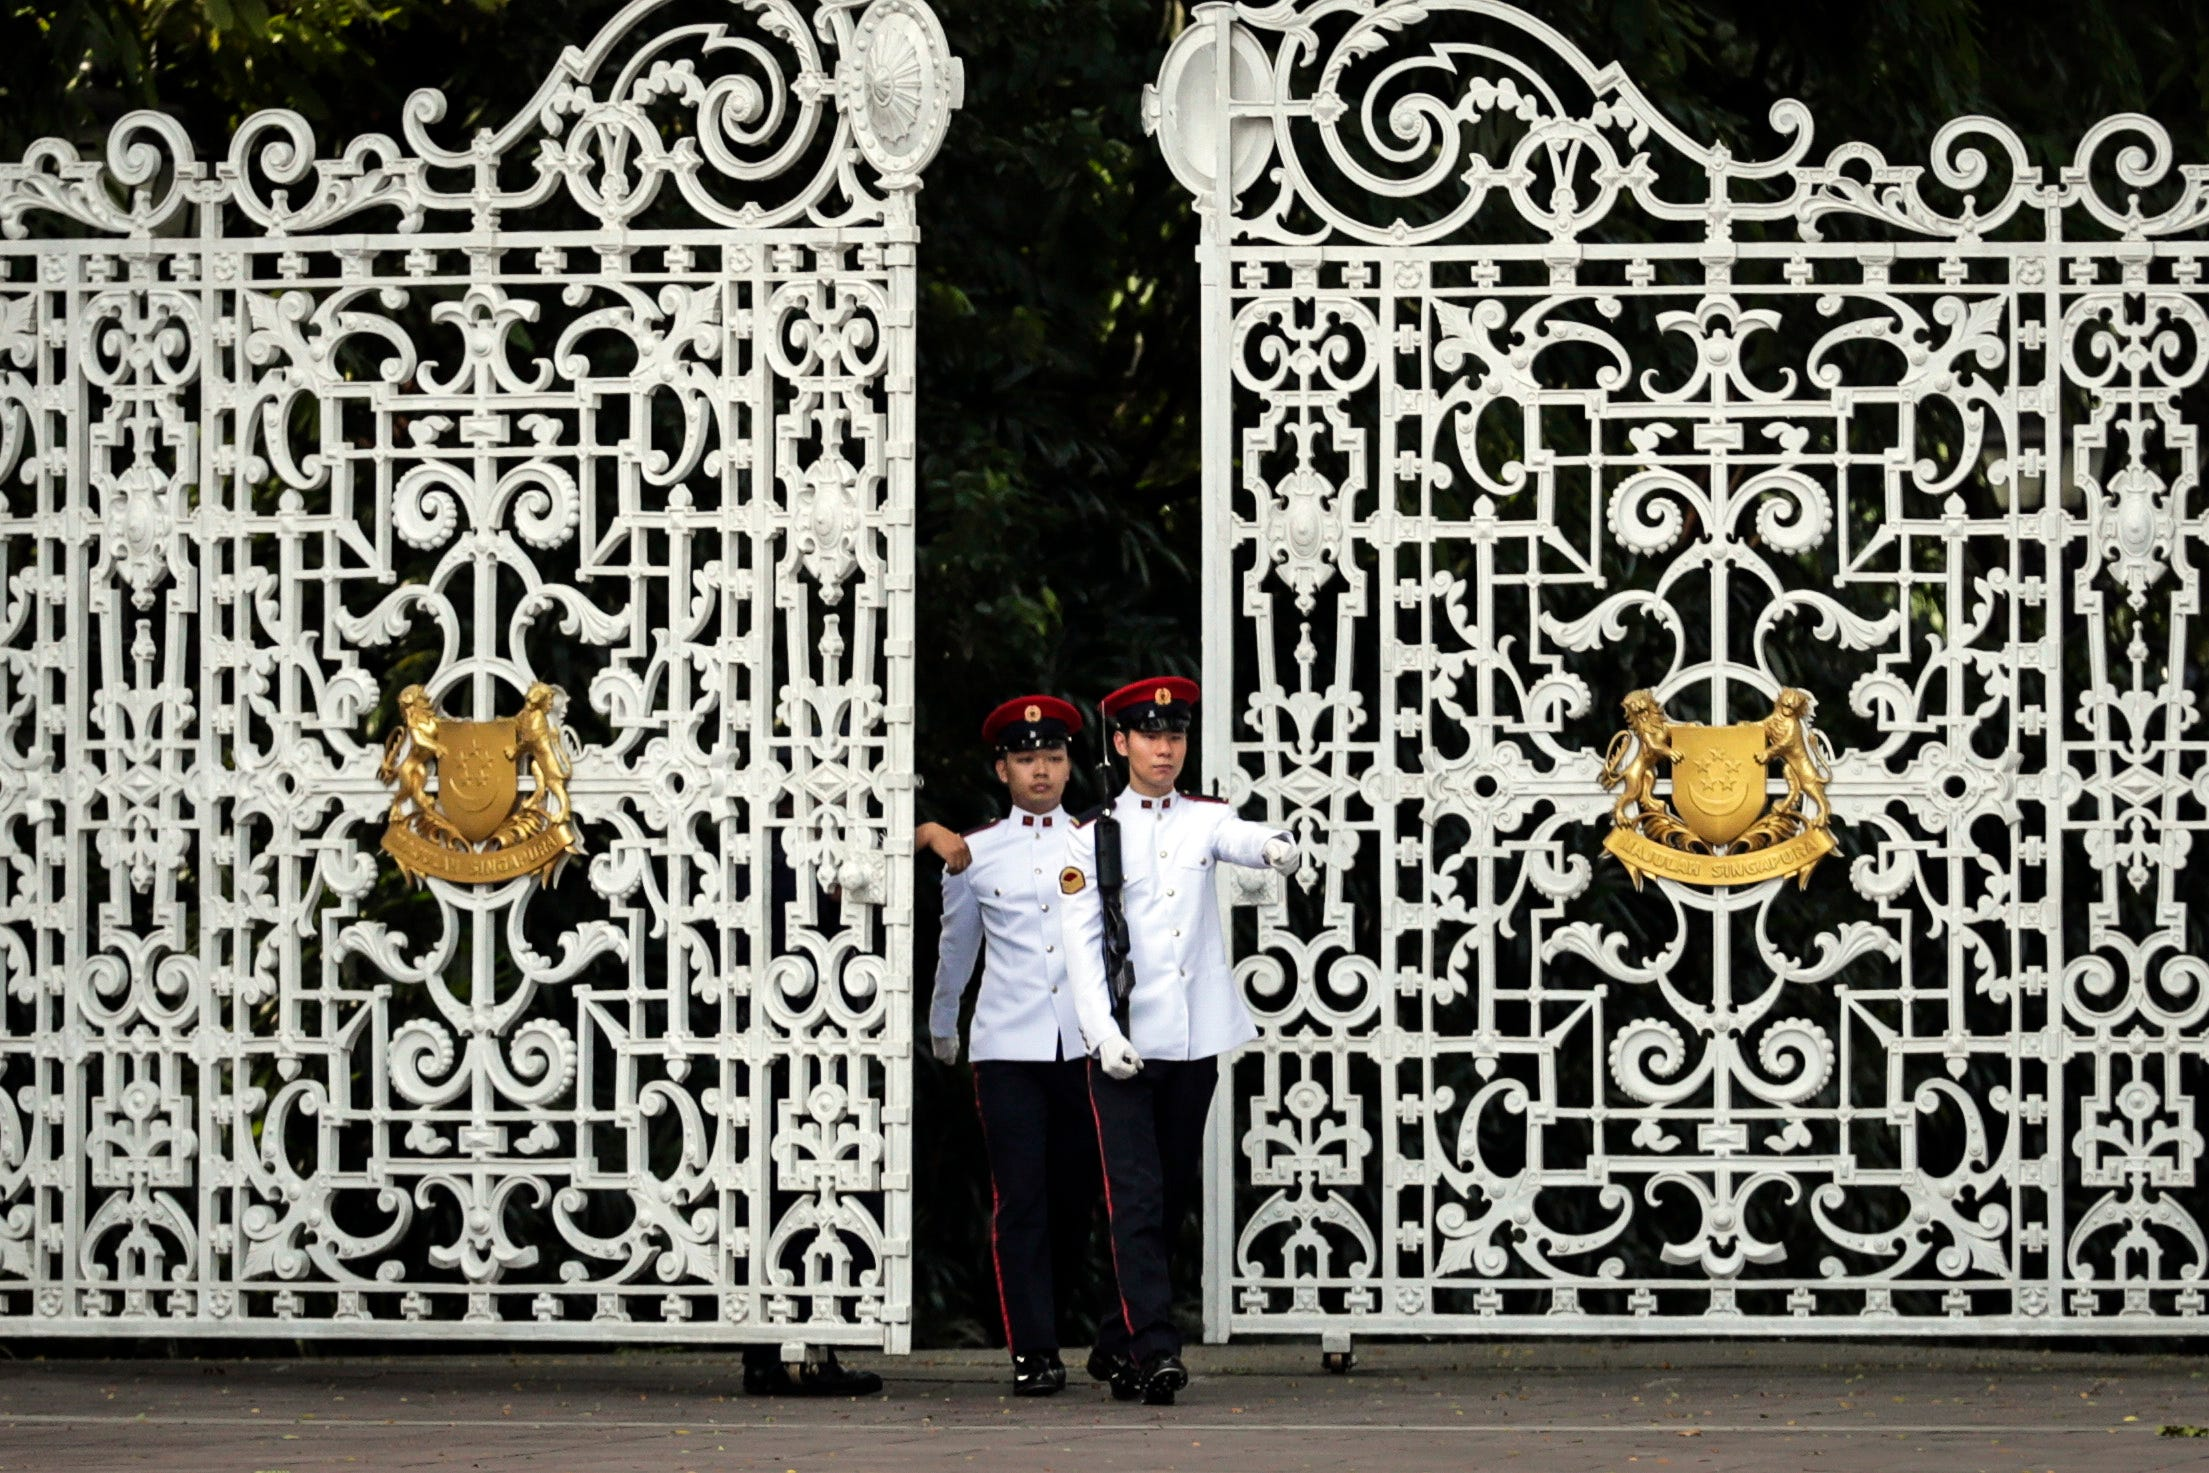 Singapore military personnel patrol in front of the gate of the Istana Presidential Palace, where North Korean Leader Kim Jong-un and Singapore Prime Minister Lee Hsien Loong will meet in Singapore. The North Korean leader is scheduled to meet on wit